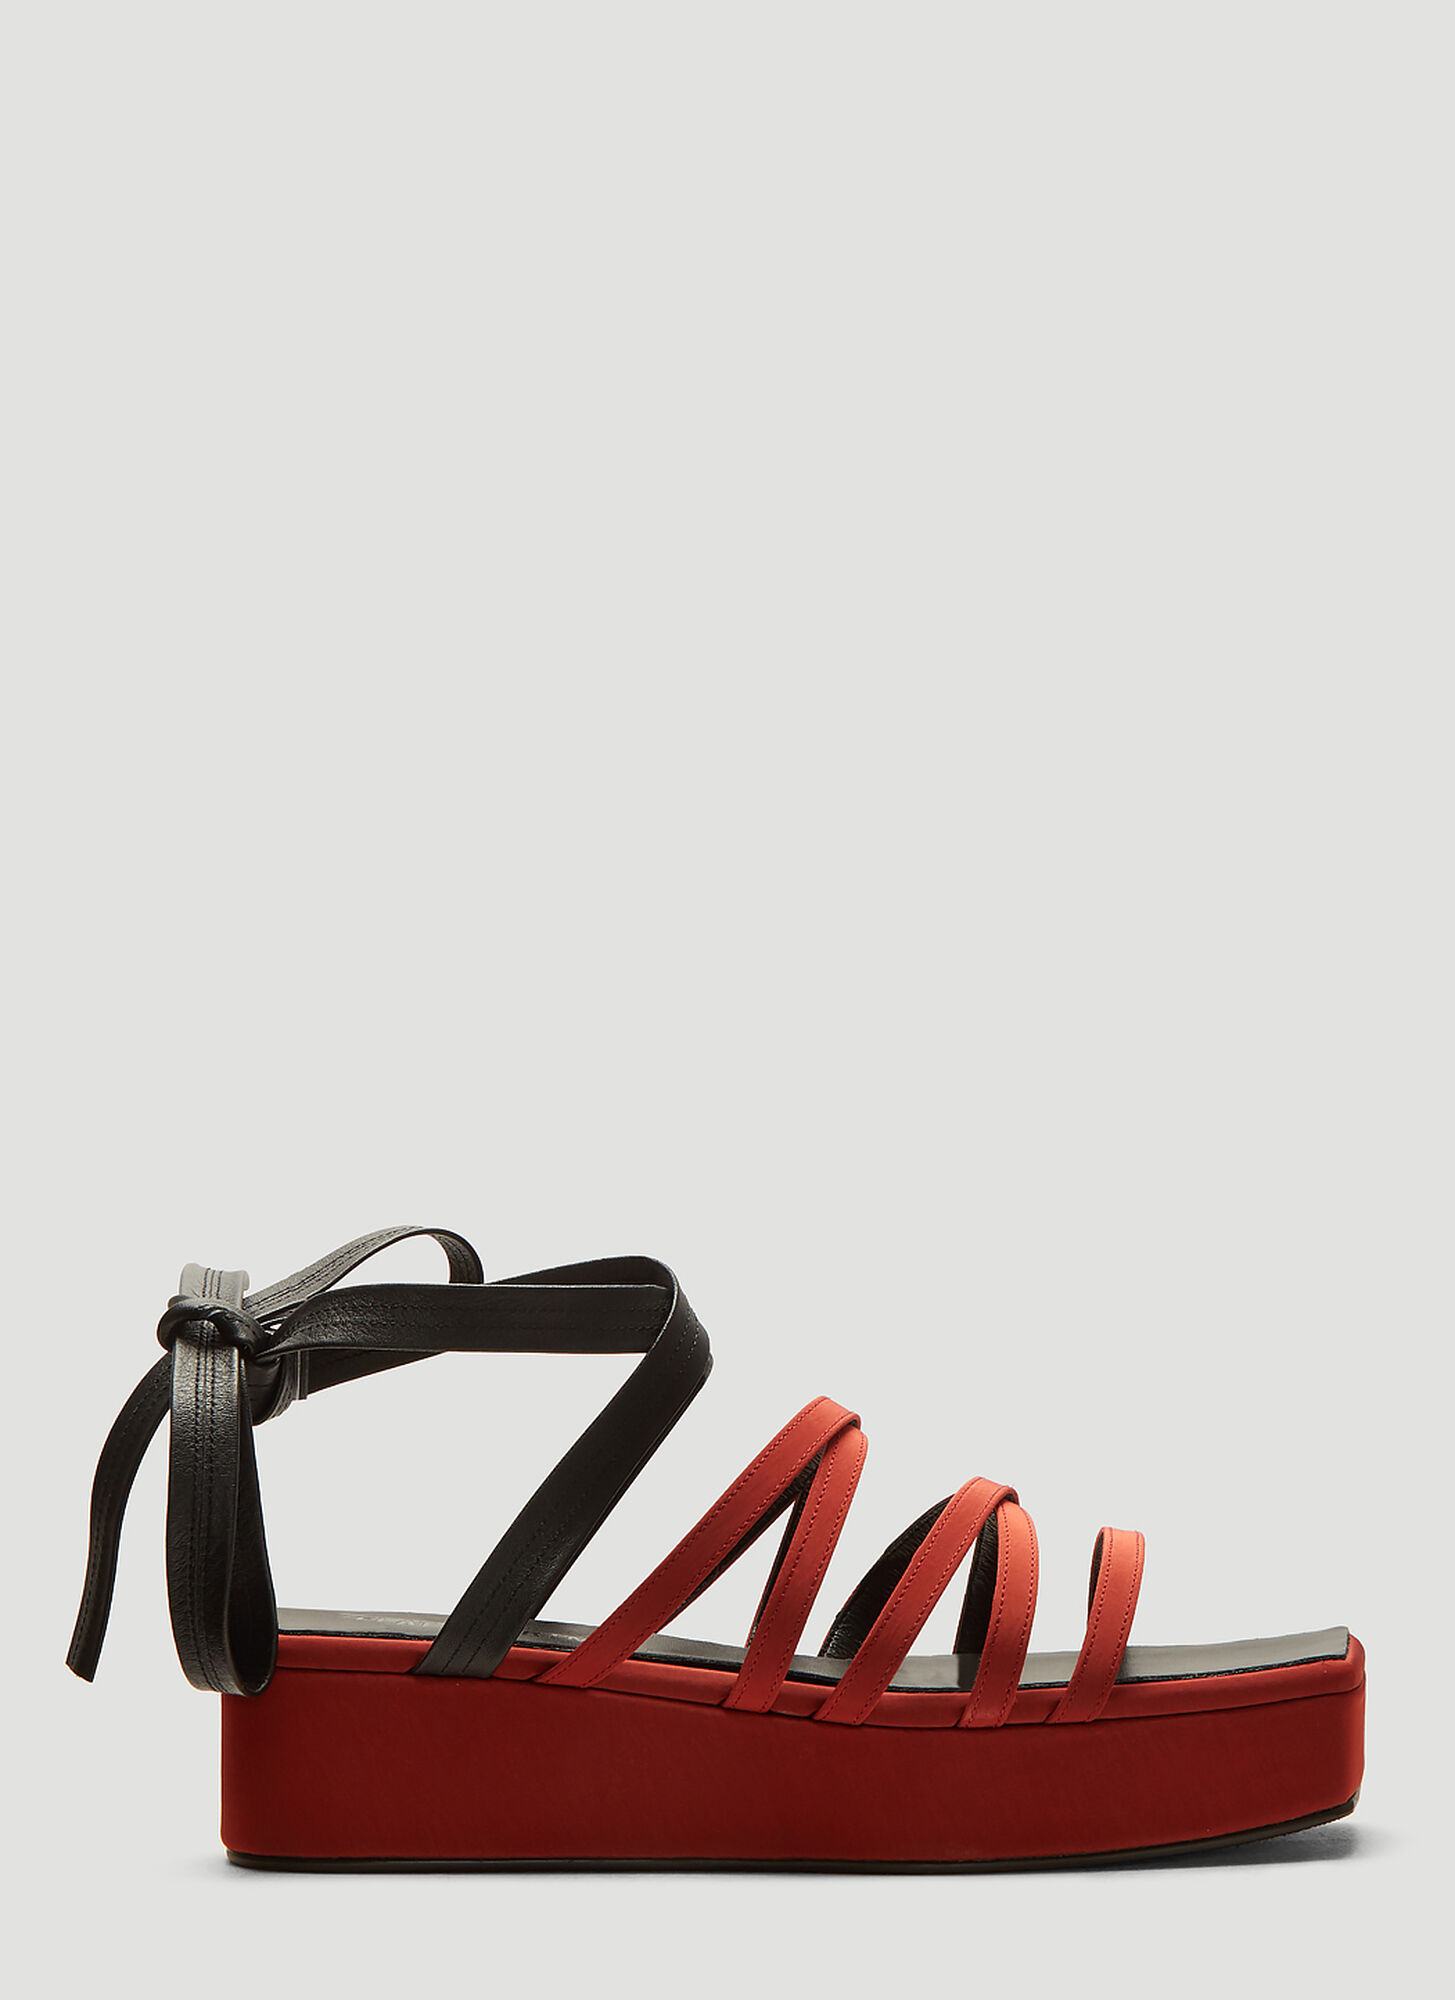 Photo of Flat Apartment Square Toe Flatform Sandals in Red - Flat Apartment Platforms